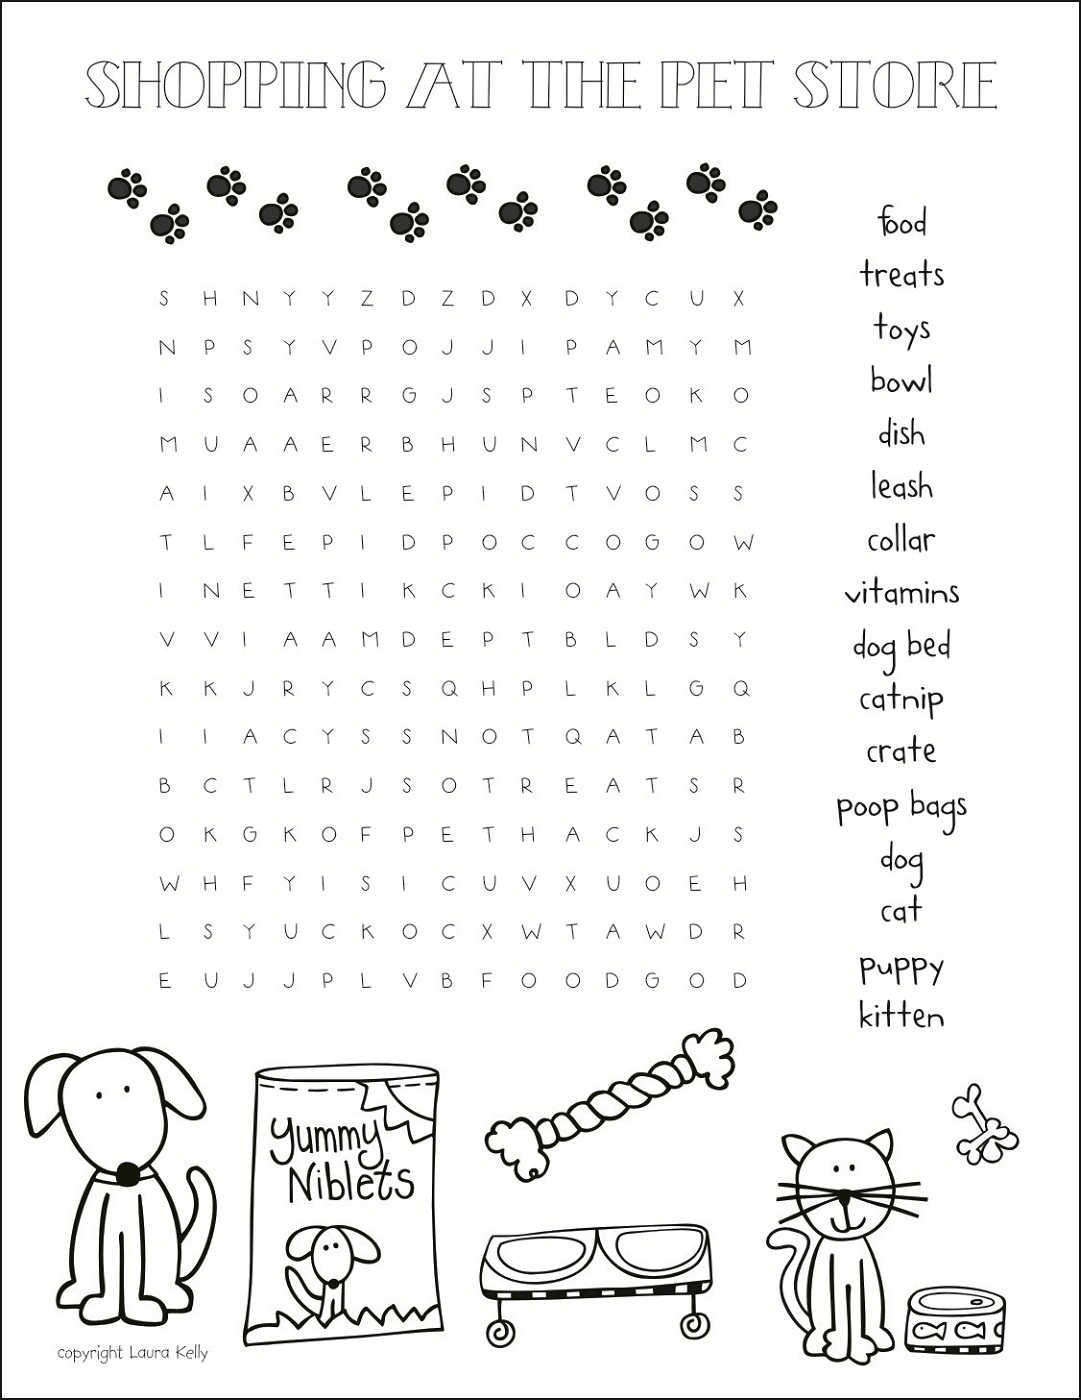 pet-word-search-cat